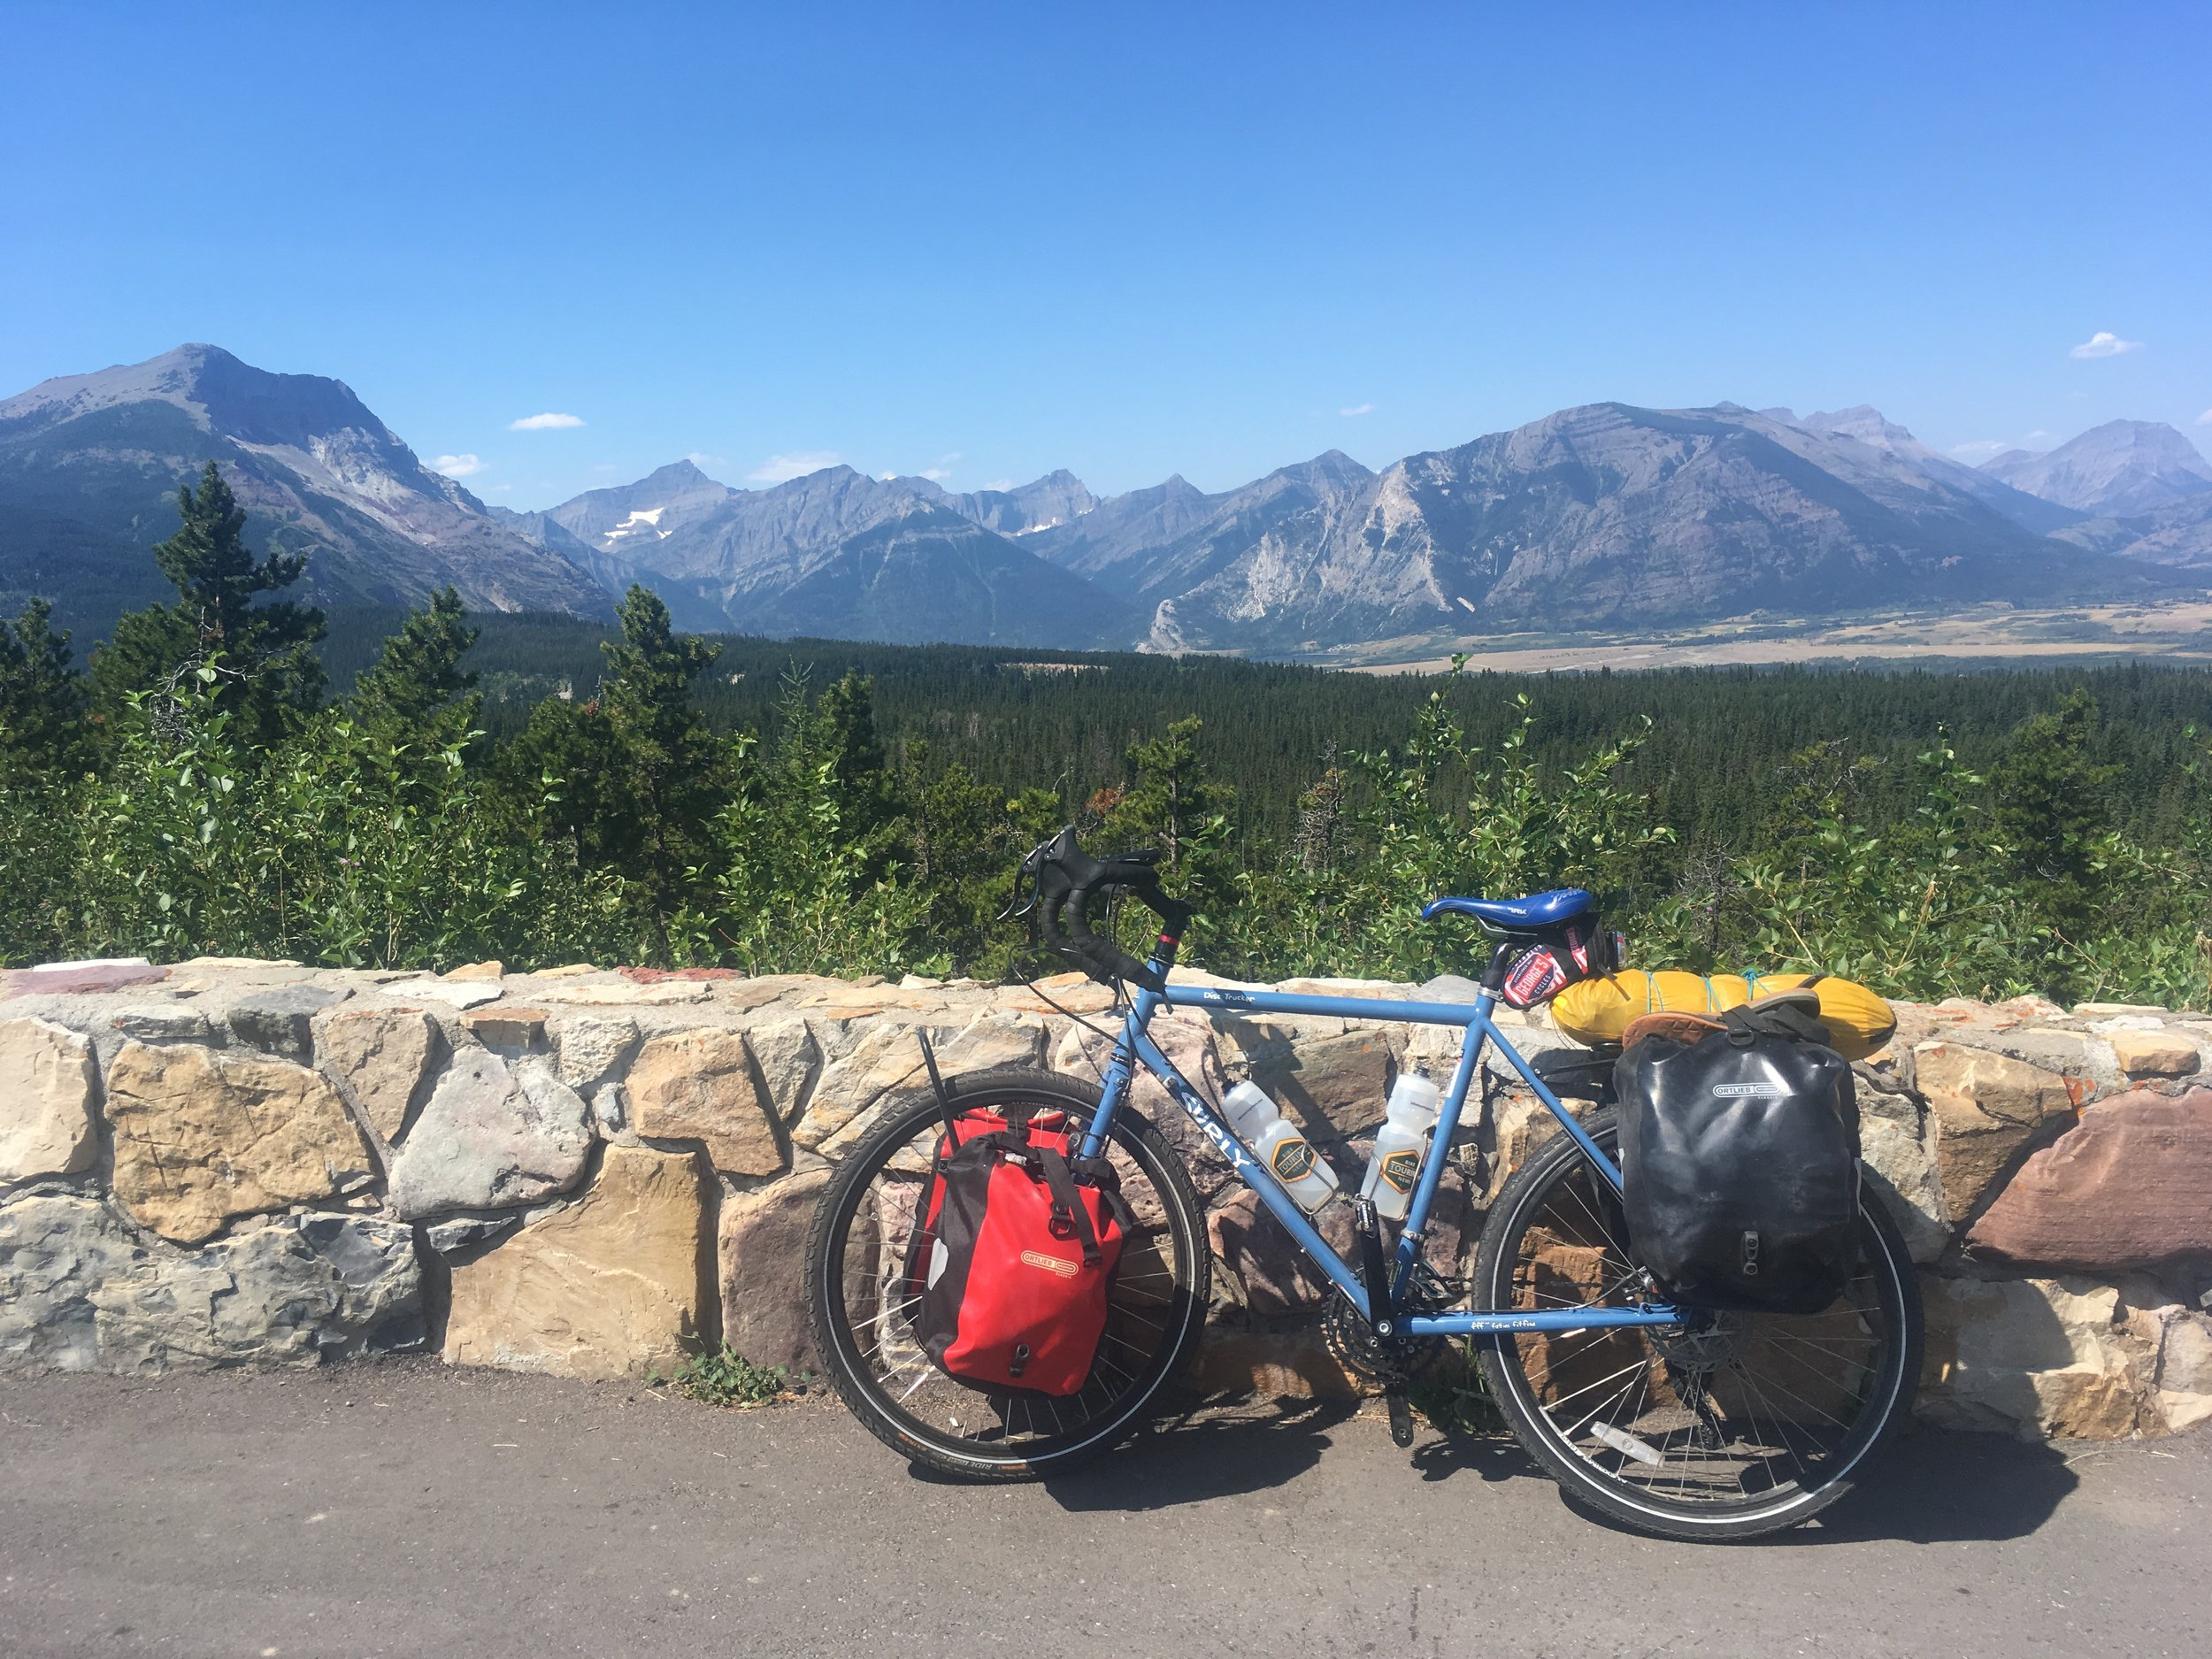 Blue skies and blue bikes somewhere in Canada